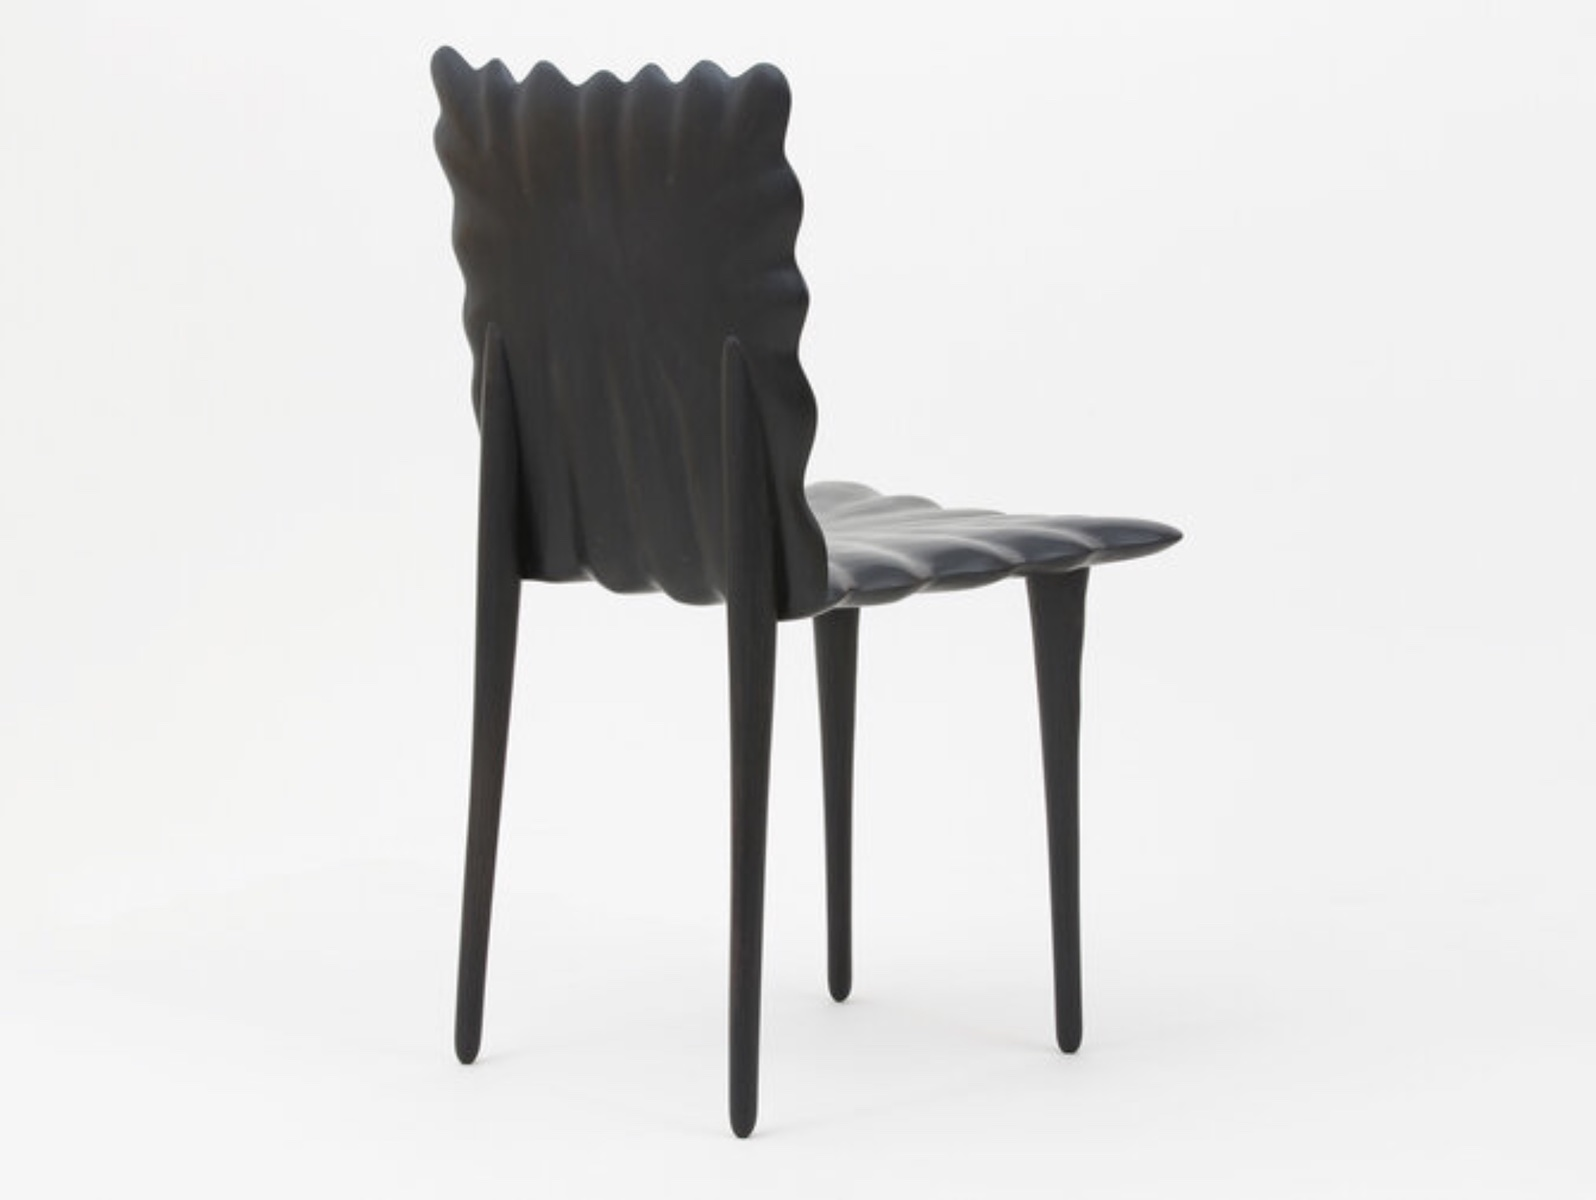 back view of the Saddle Chair by artist Christopher Kurtz